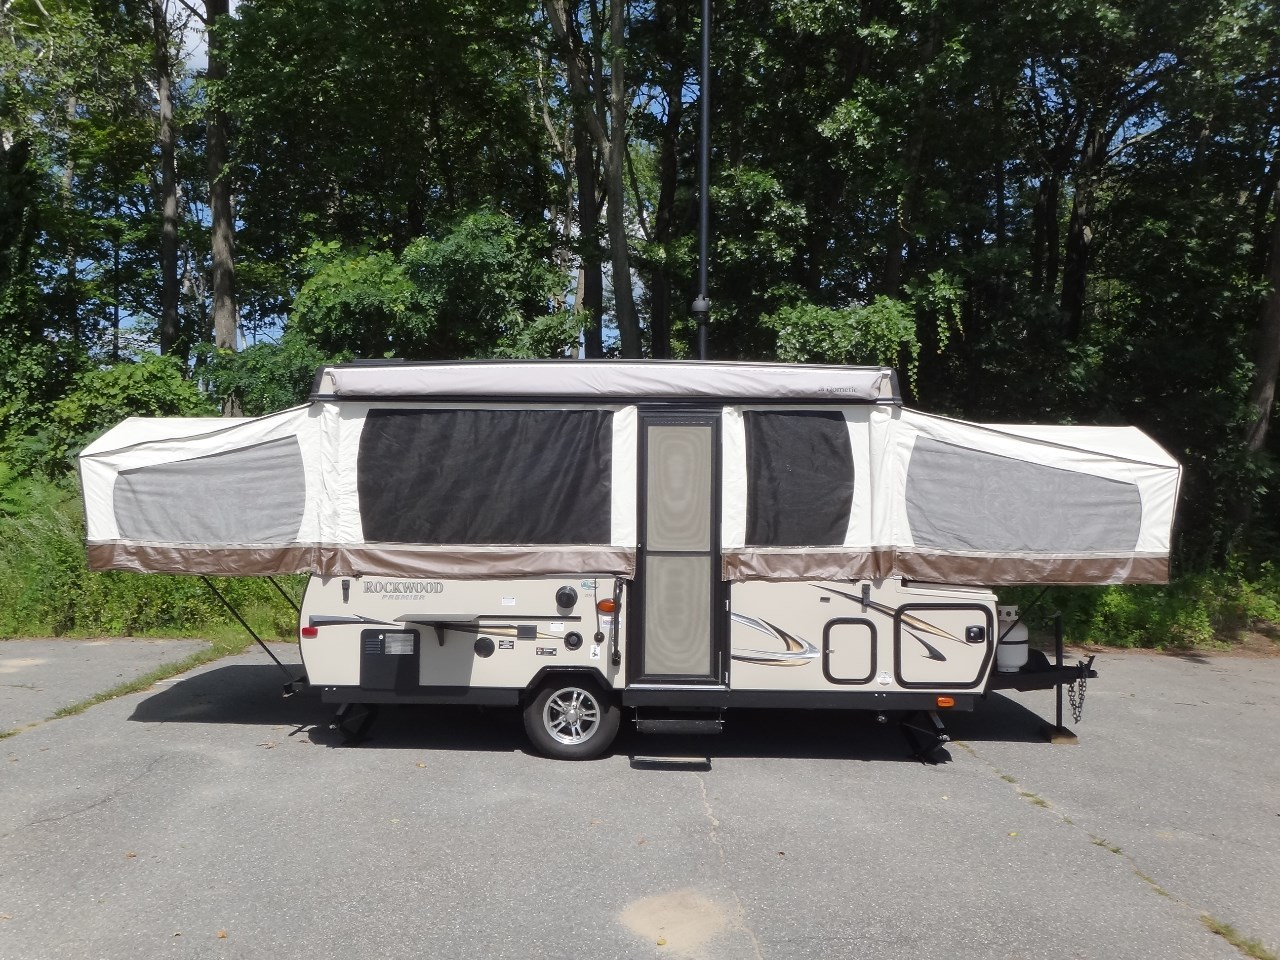 Rockwood A-FRAME A122S For Sale: 125 RVs